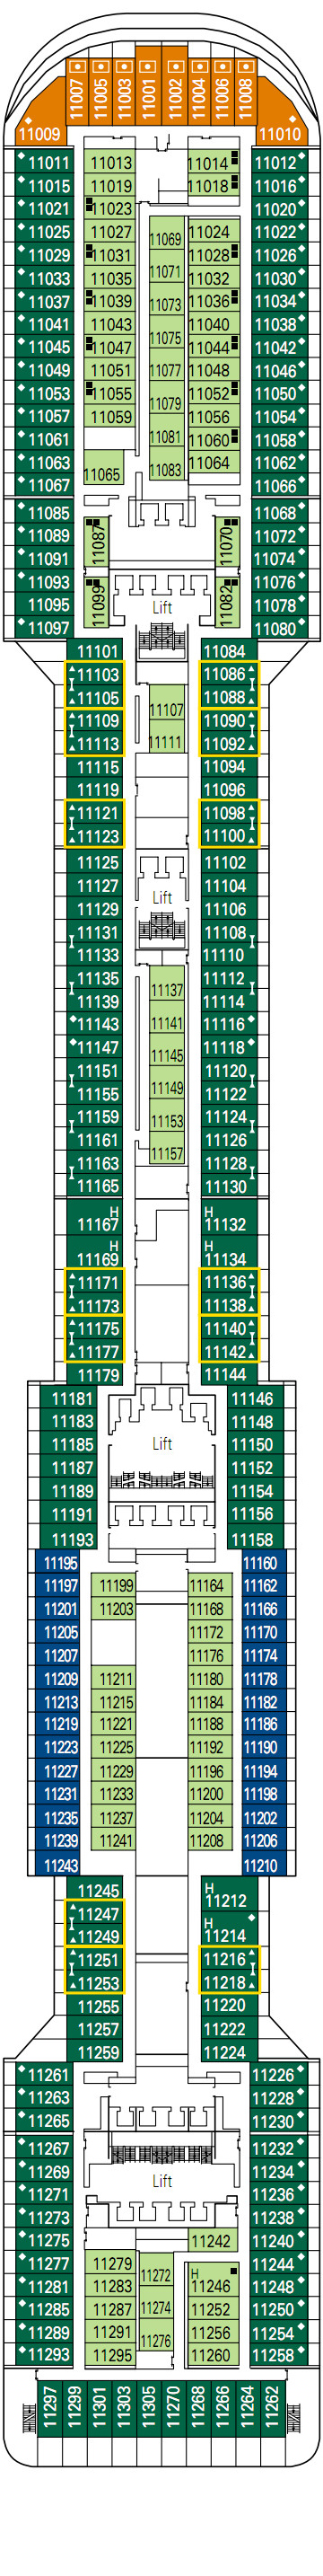 MSC Divina Iride Deck 11 layout